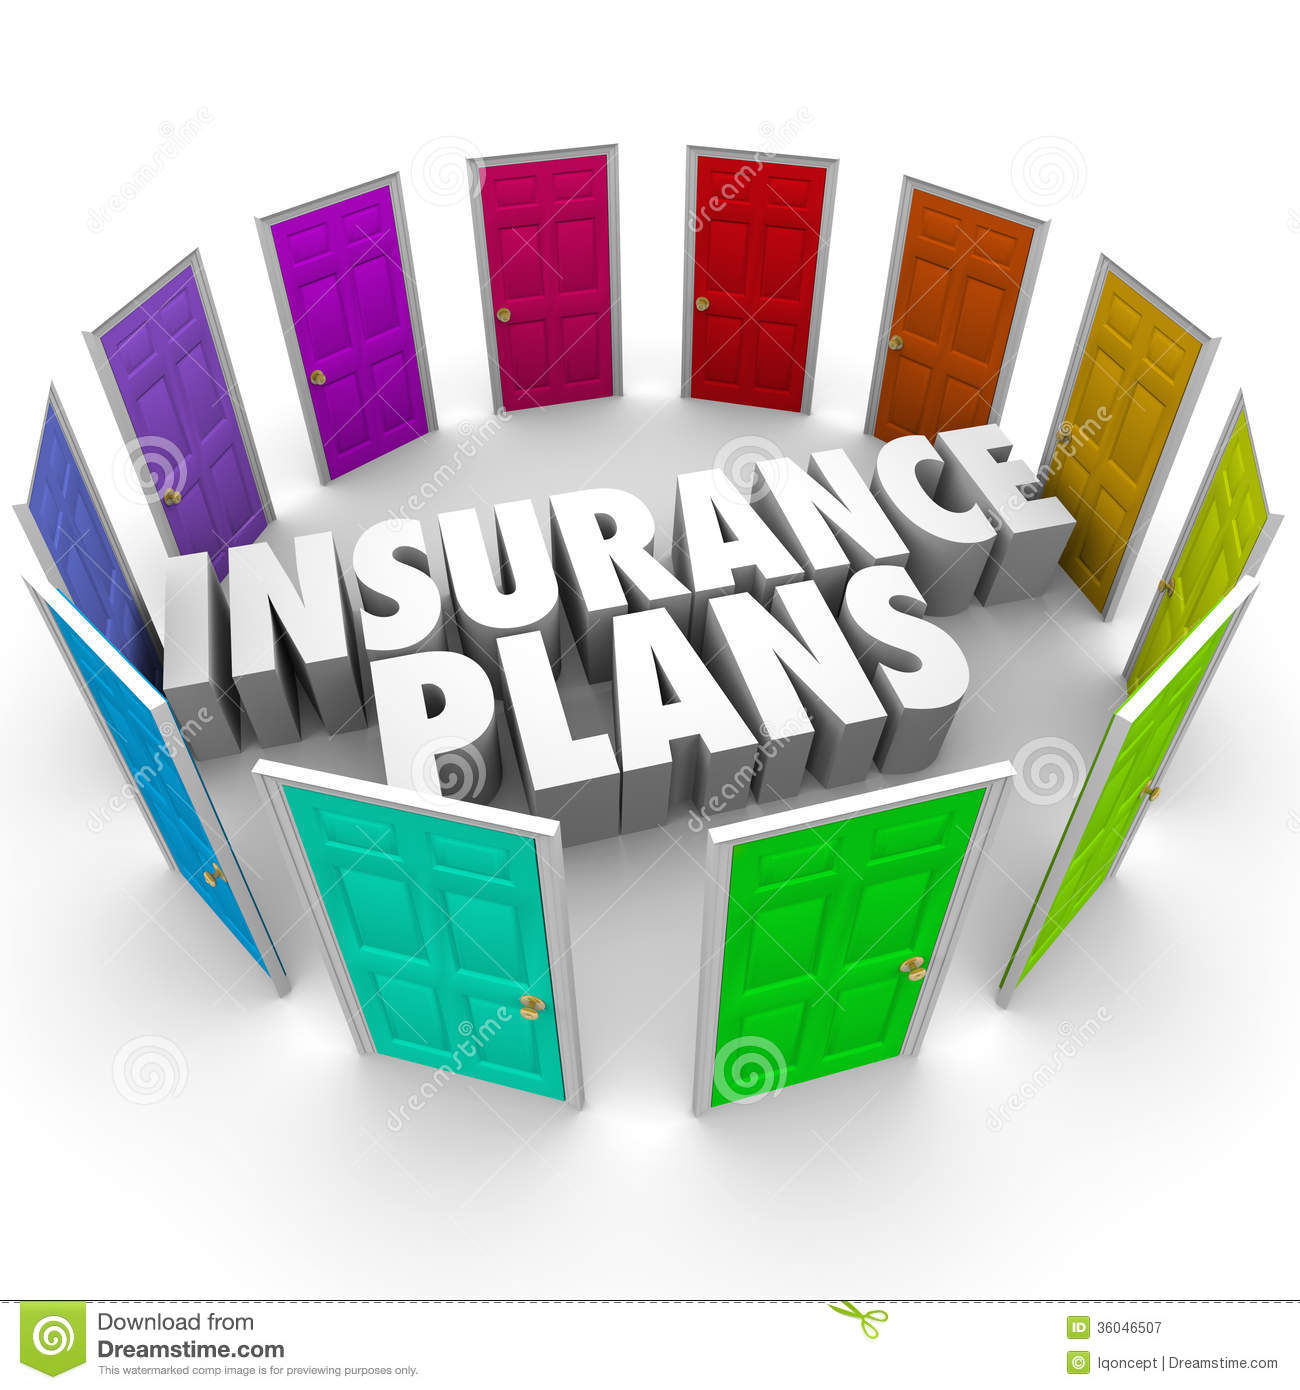 Insurance Plans Many Options Health Care Choices Doors Royalty Free